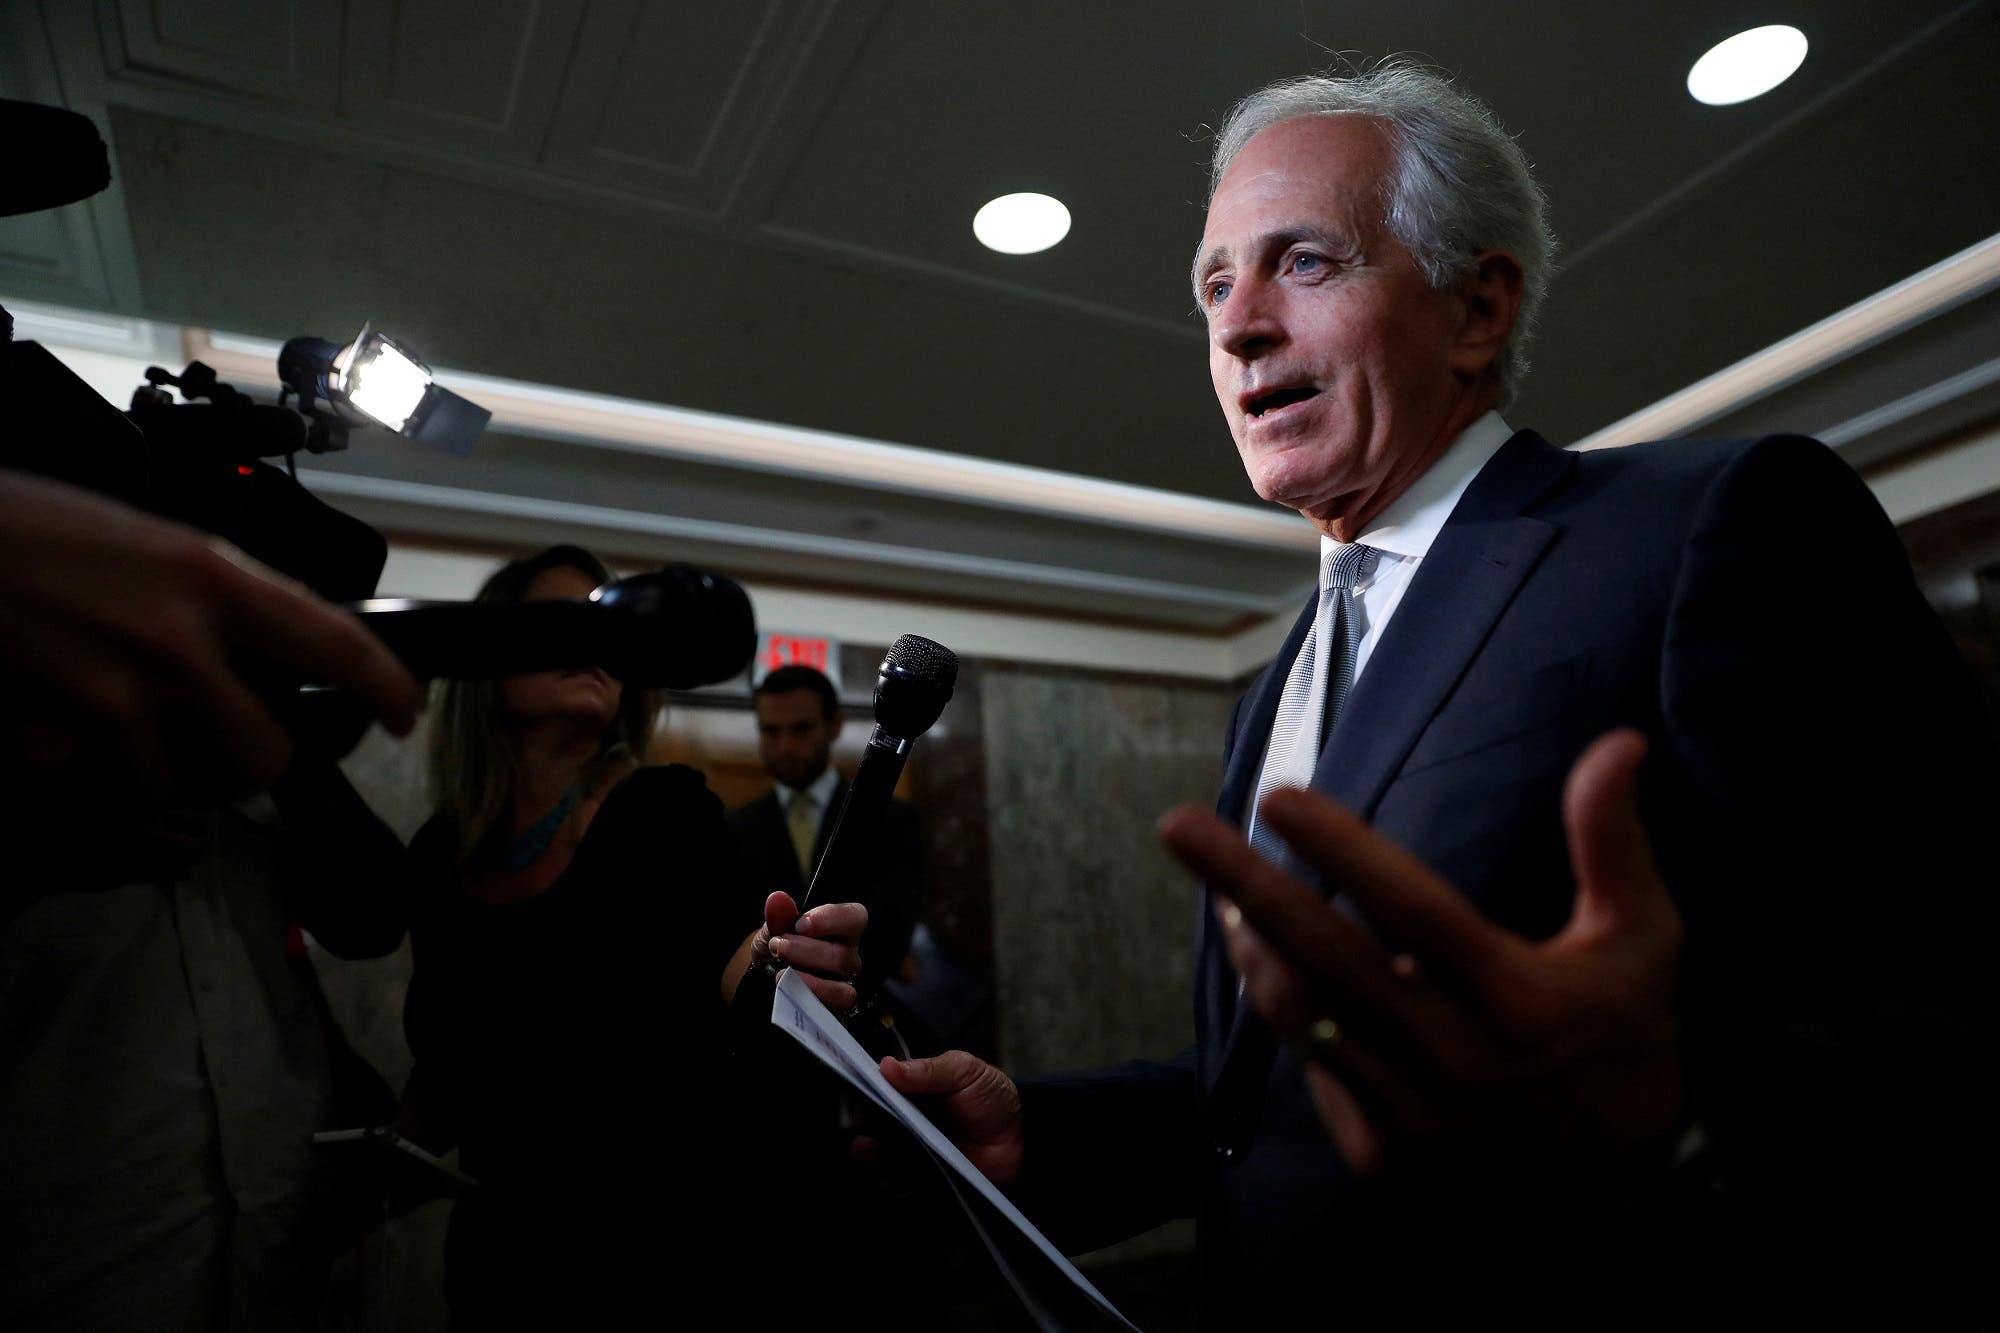 Sen. Bob Corker speaks with reporters after announcing his retirement at the conclusion of his term on Capitol Hill in Washington, on September 26, 2017. (Reuters)